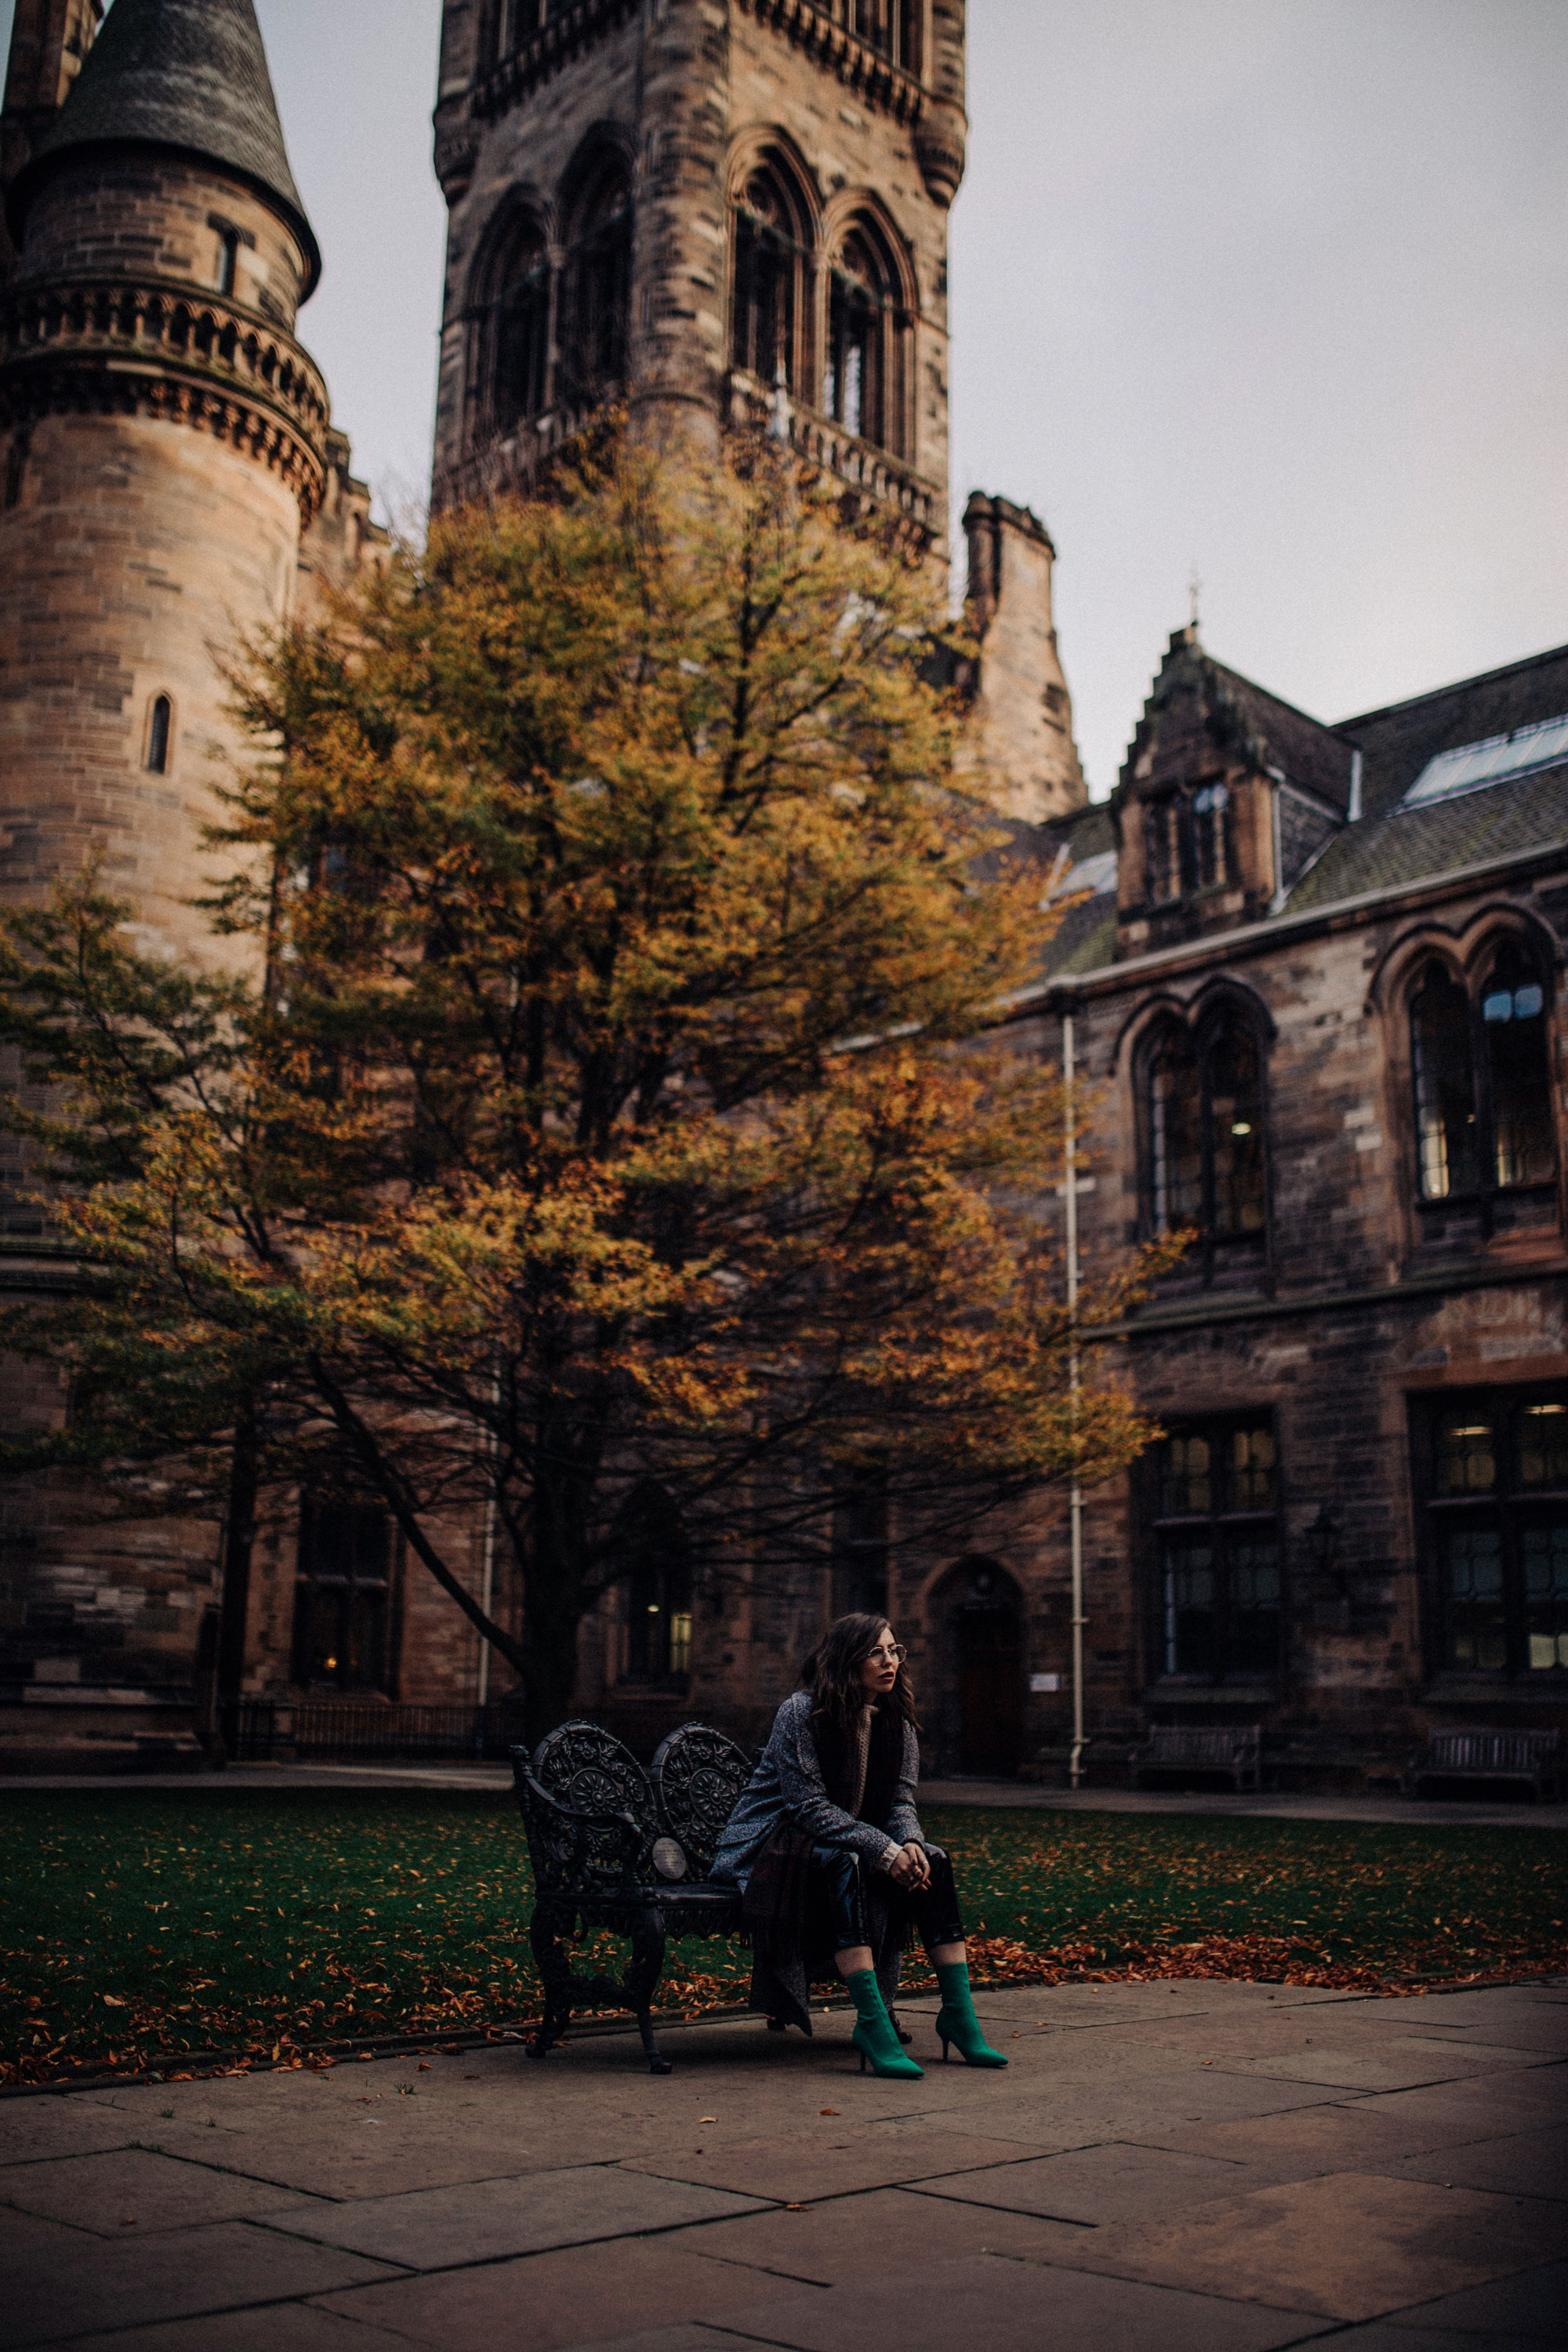 Glasgow University | Harry Potter locations in Scotland |   Edinburgh | Travel | Roadtrip | must see